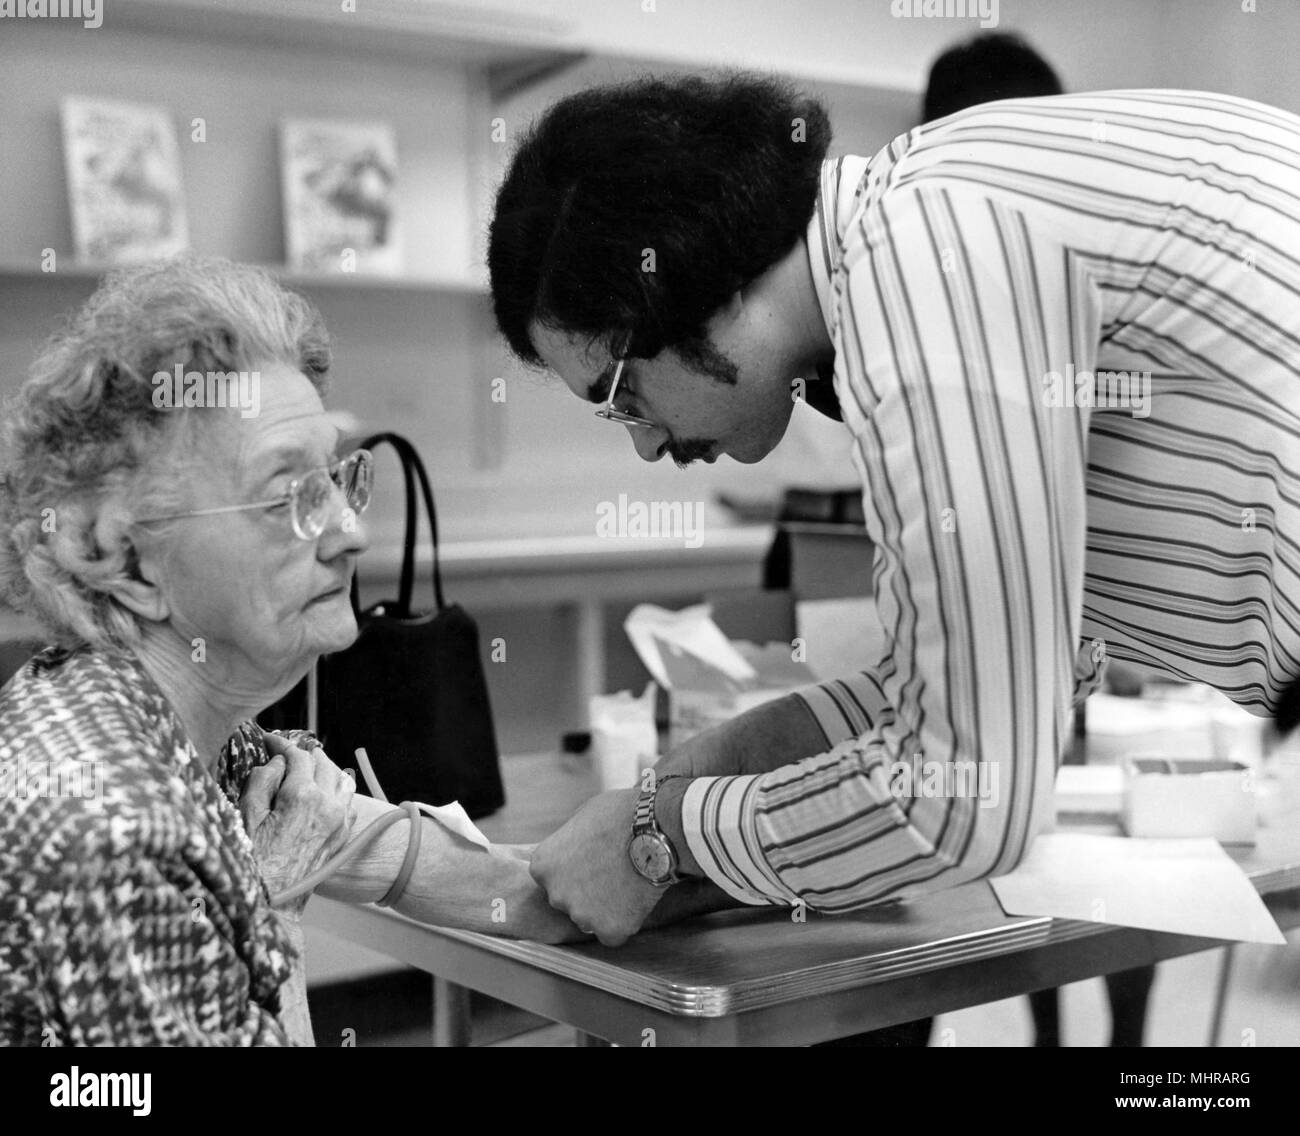 Public health worker taking a blood sample from an older woman, 1976. Image courtesy Centers for Disease Control (CDC). () - Stock Image